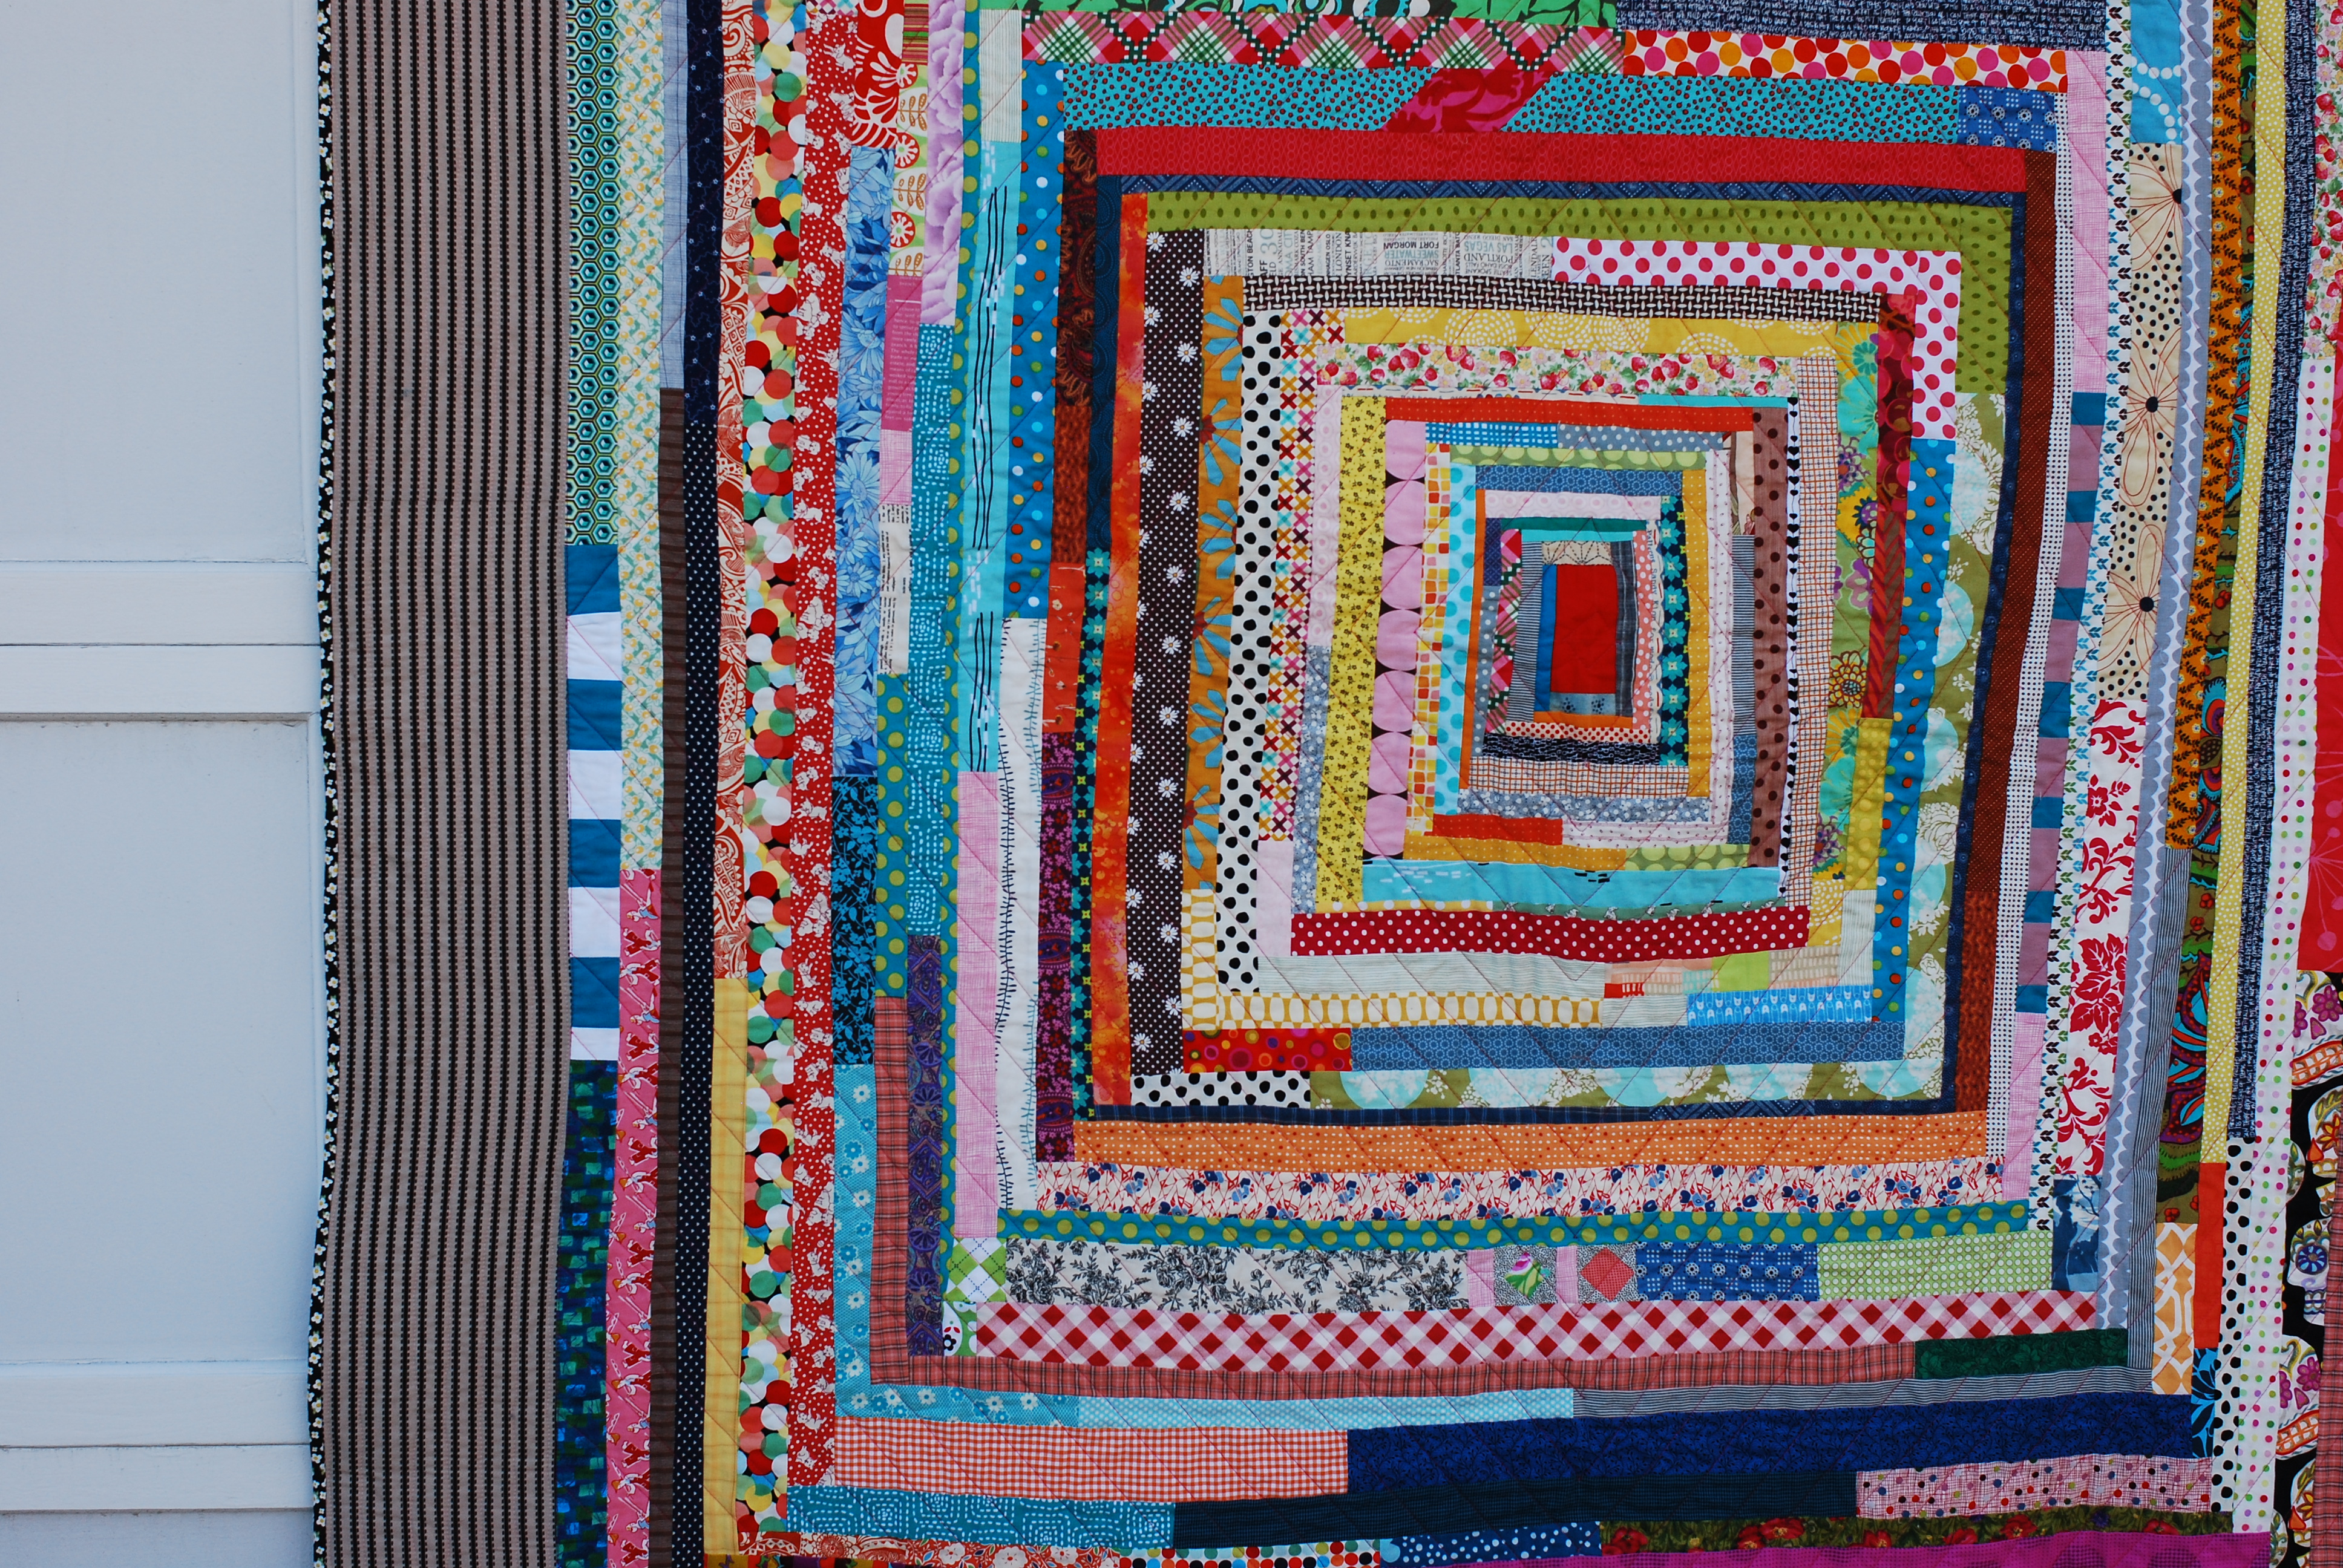 Traditionally, The Center Of Any Log Cabin Quilt Block Is Red. This  Represents The Hearth And Center Of The Home. The Light And The Warmth.